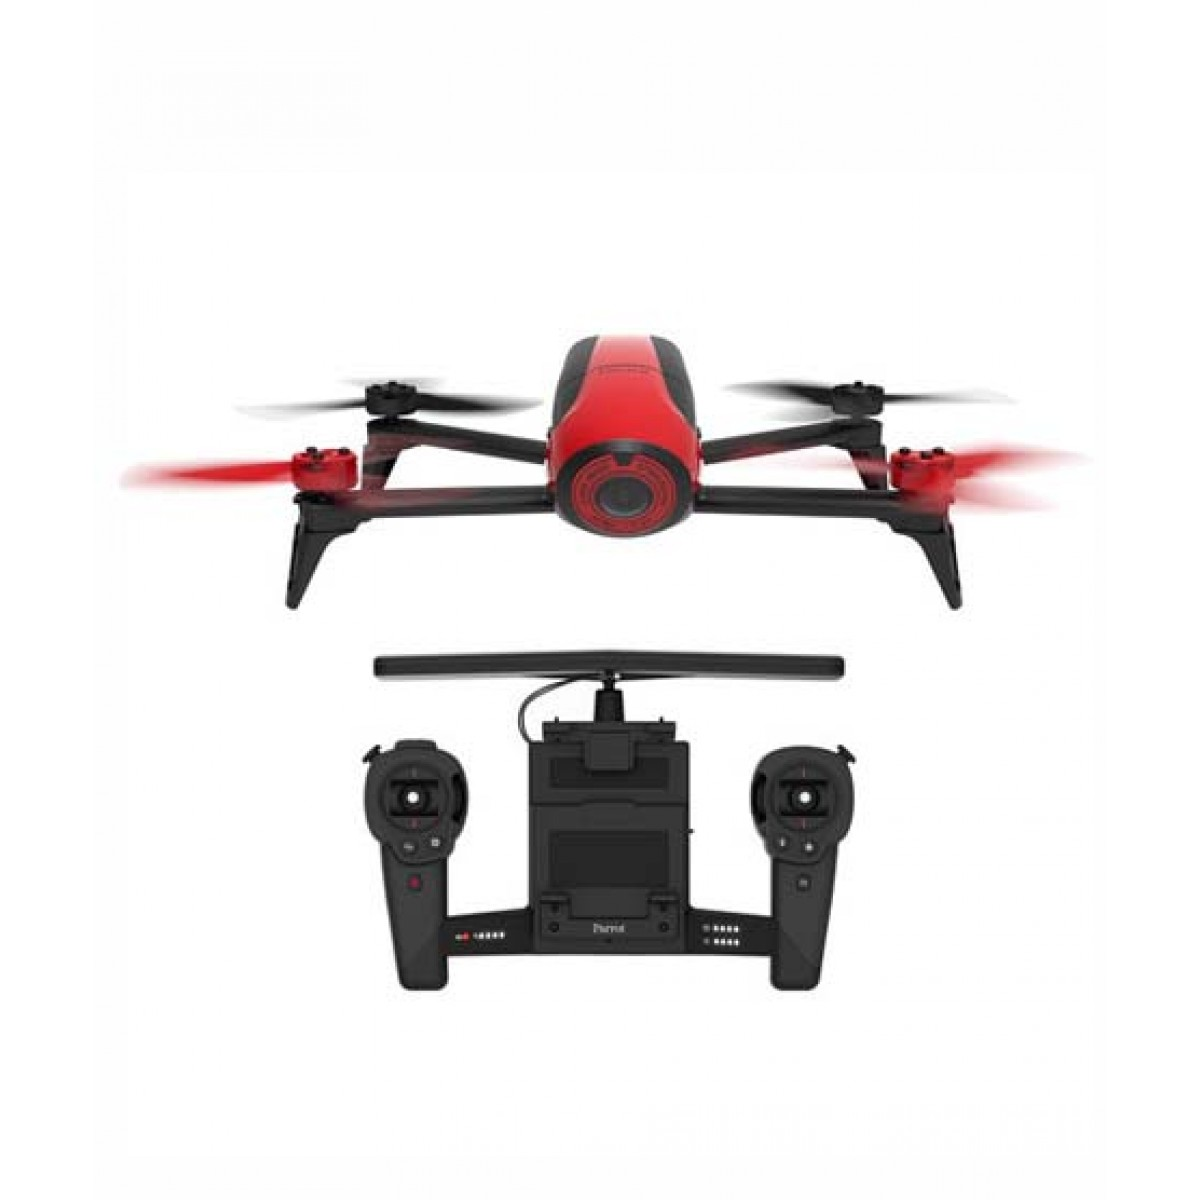 Parrot BeBop Drone 2 Quadcopter Red with Skycontroller